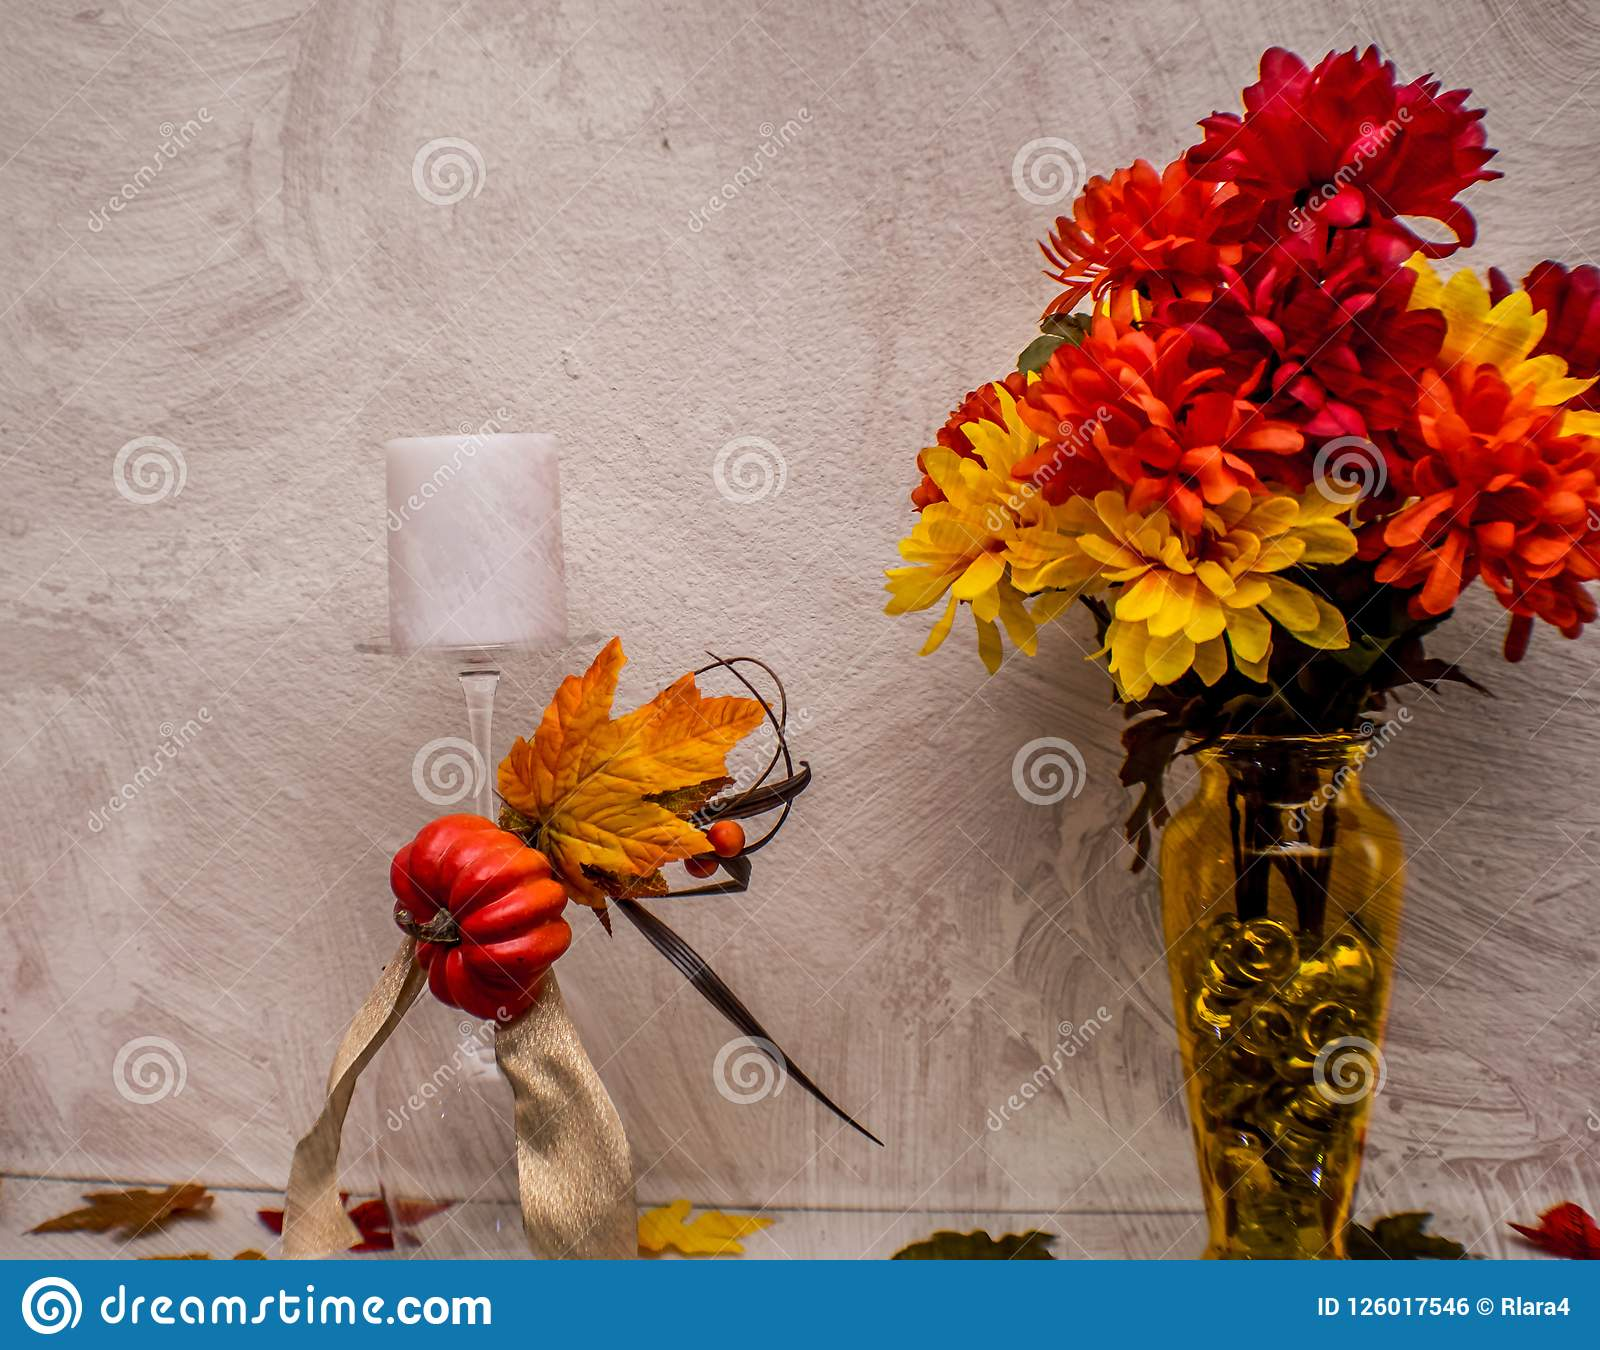 Fall decorflowers with texturedpainting overlay stock photo pretty bold colorful fall flowers and candle decor with a textured painting overlay mightylinksfo